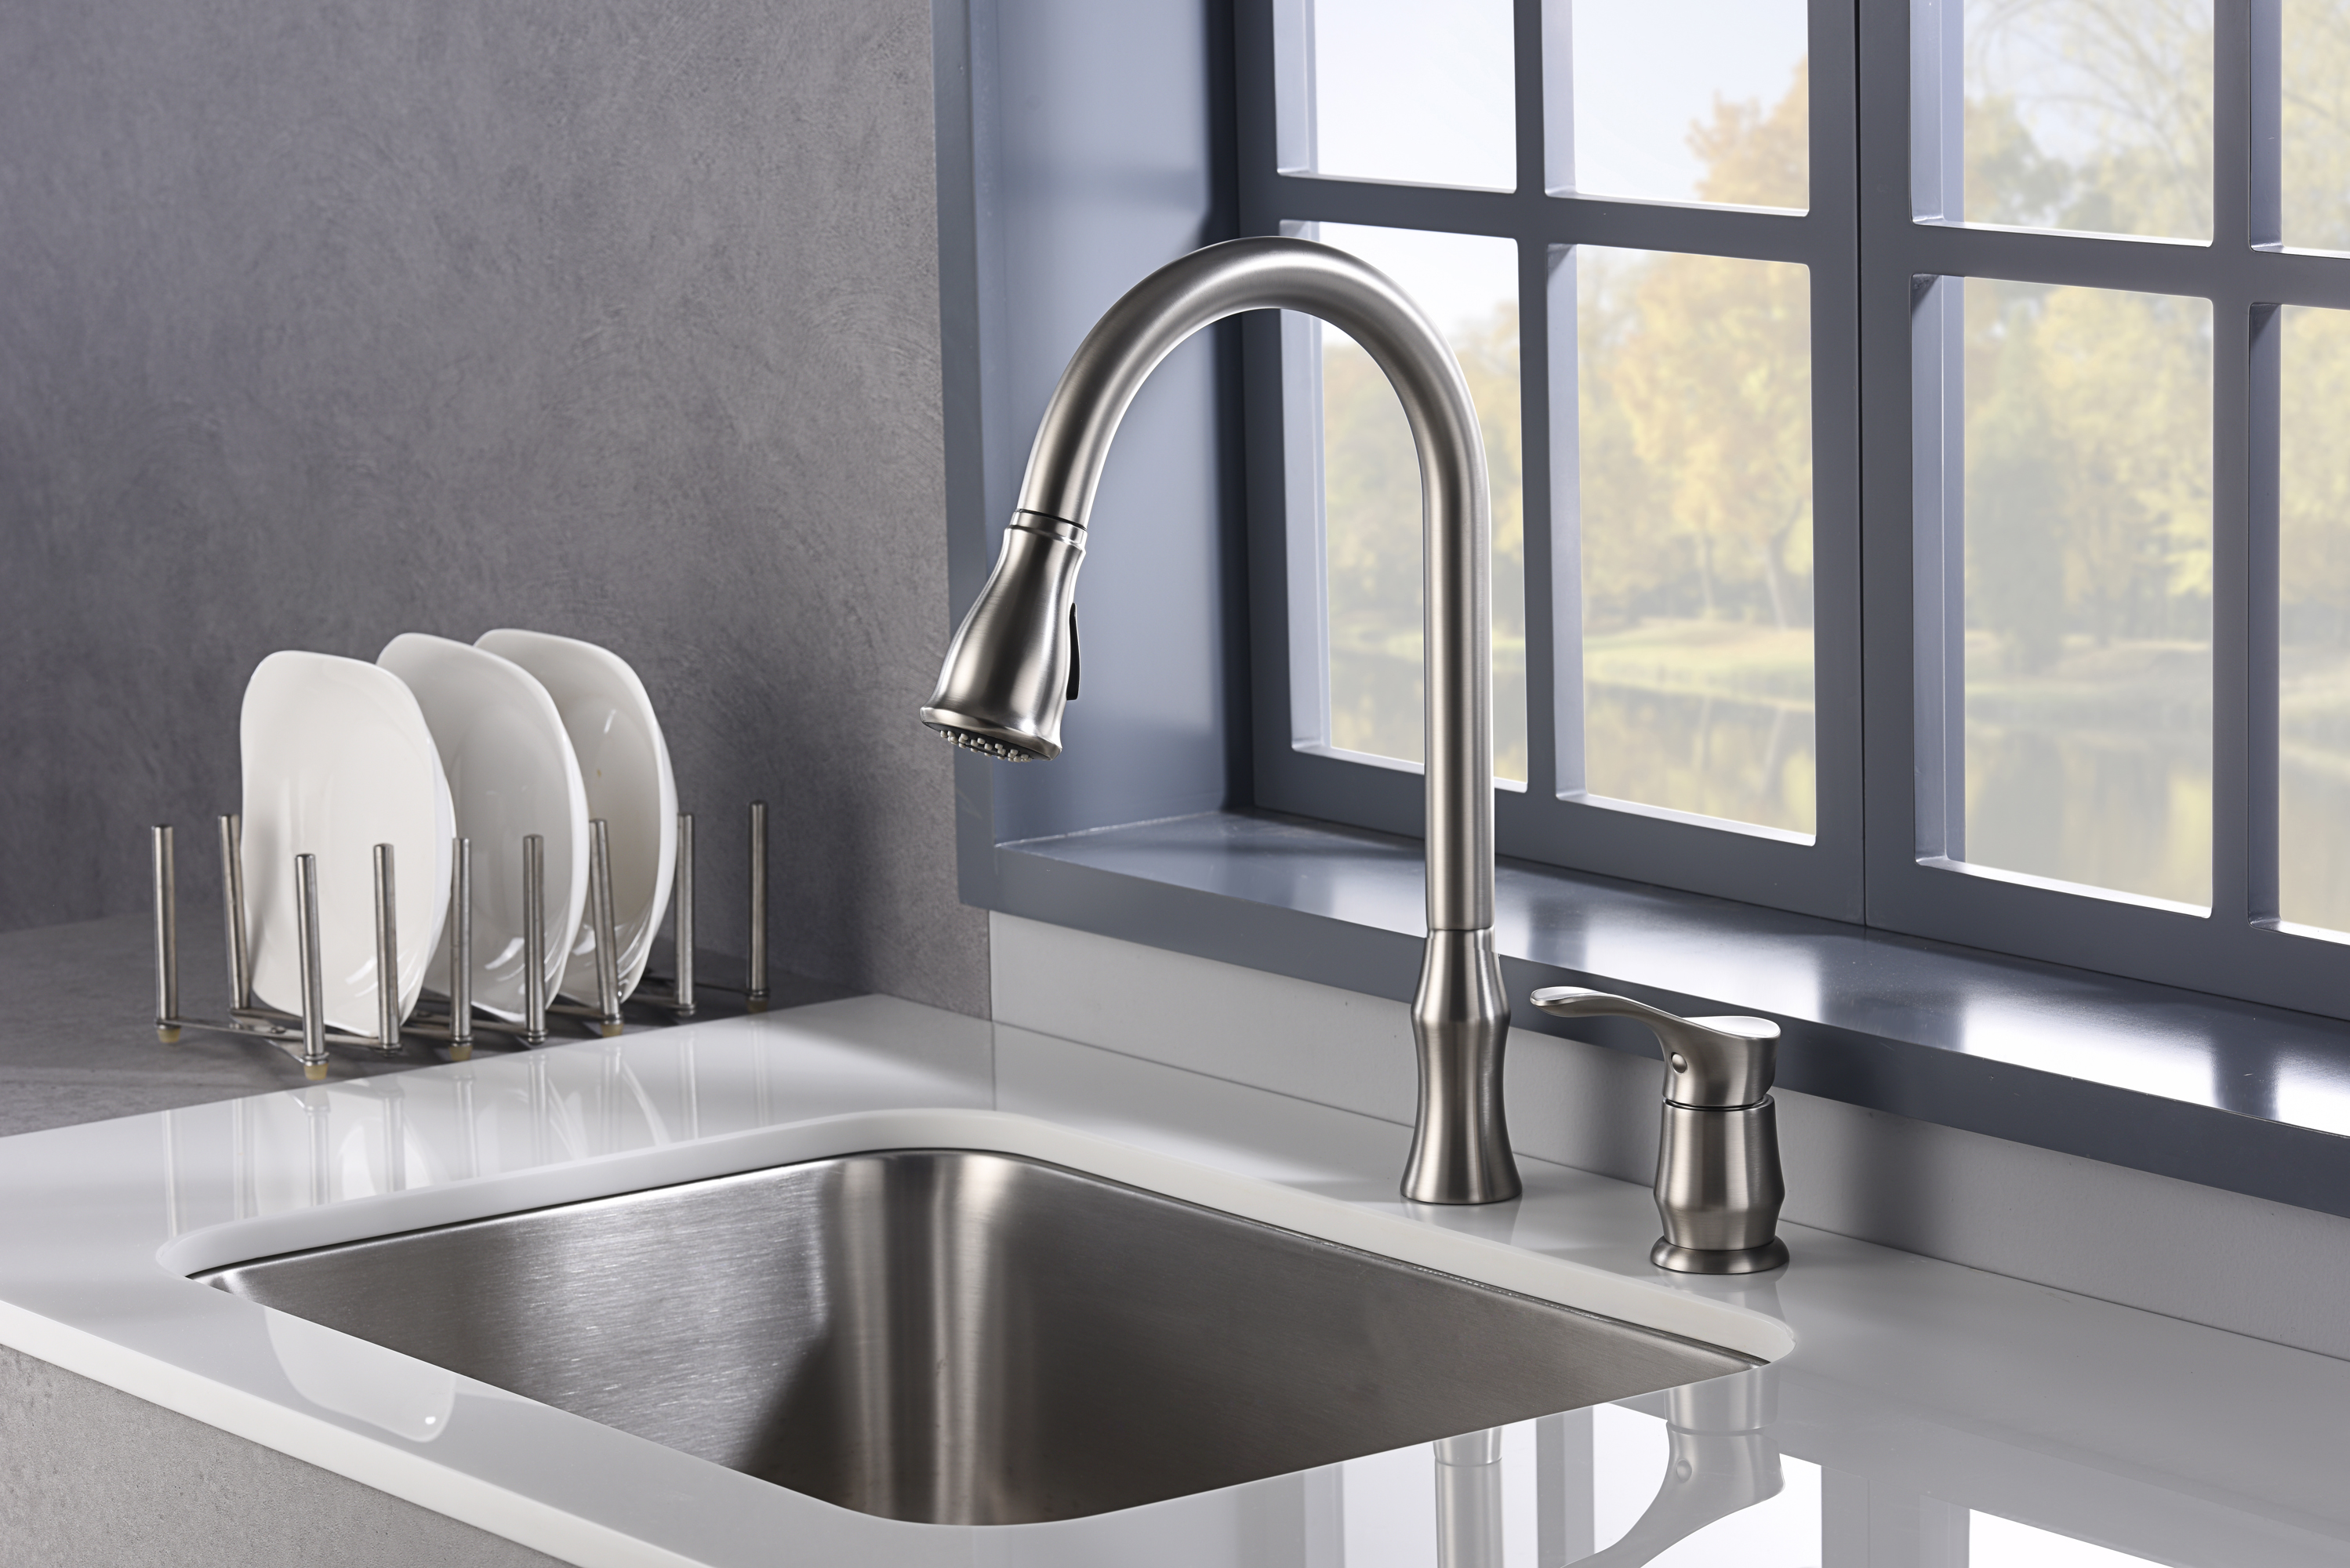 Karran Hillwood Single Lever Handle Lead-free Brass ADA Kitchen Faucet, Pull Down, Stainless Steel, KKF260SS